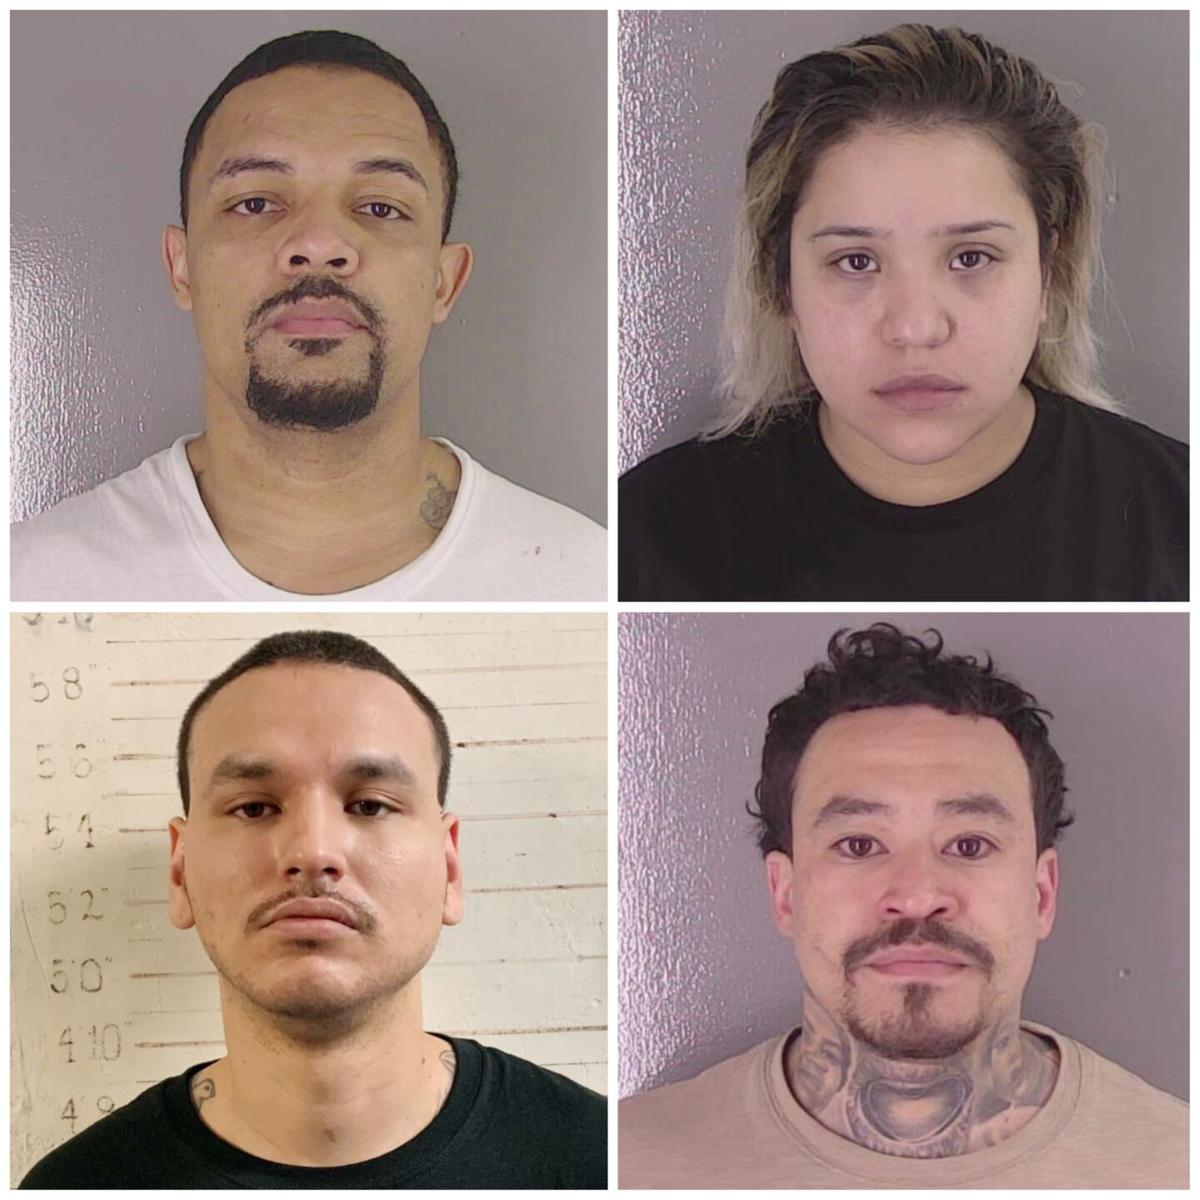 photo_ft_news_bopp murder suspects mugshots.jpg